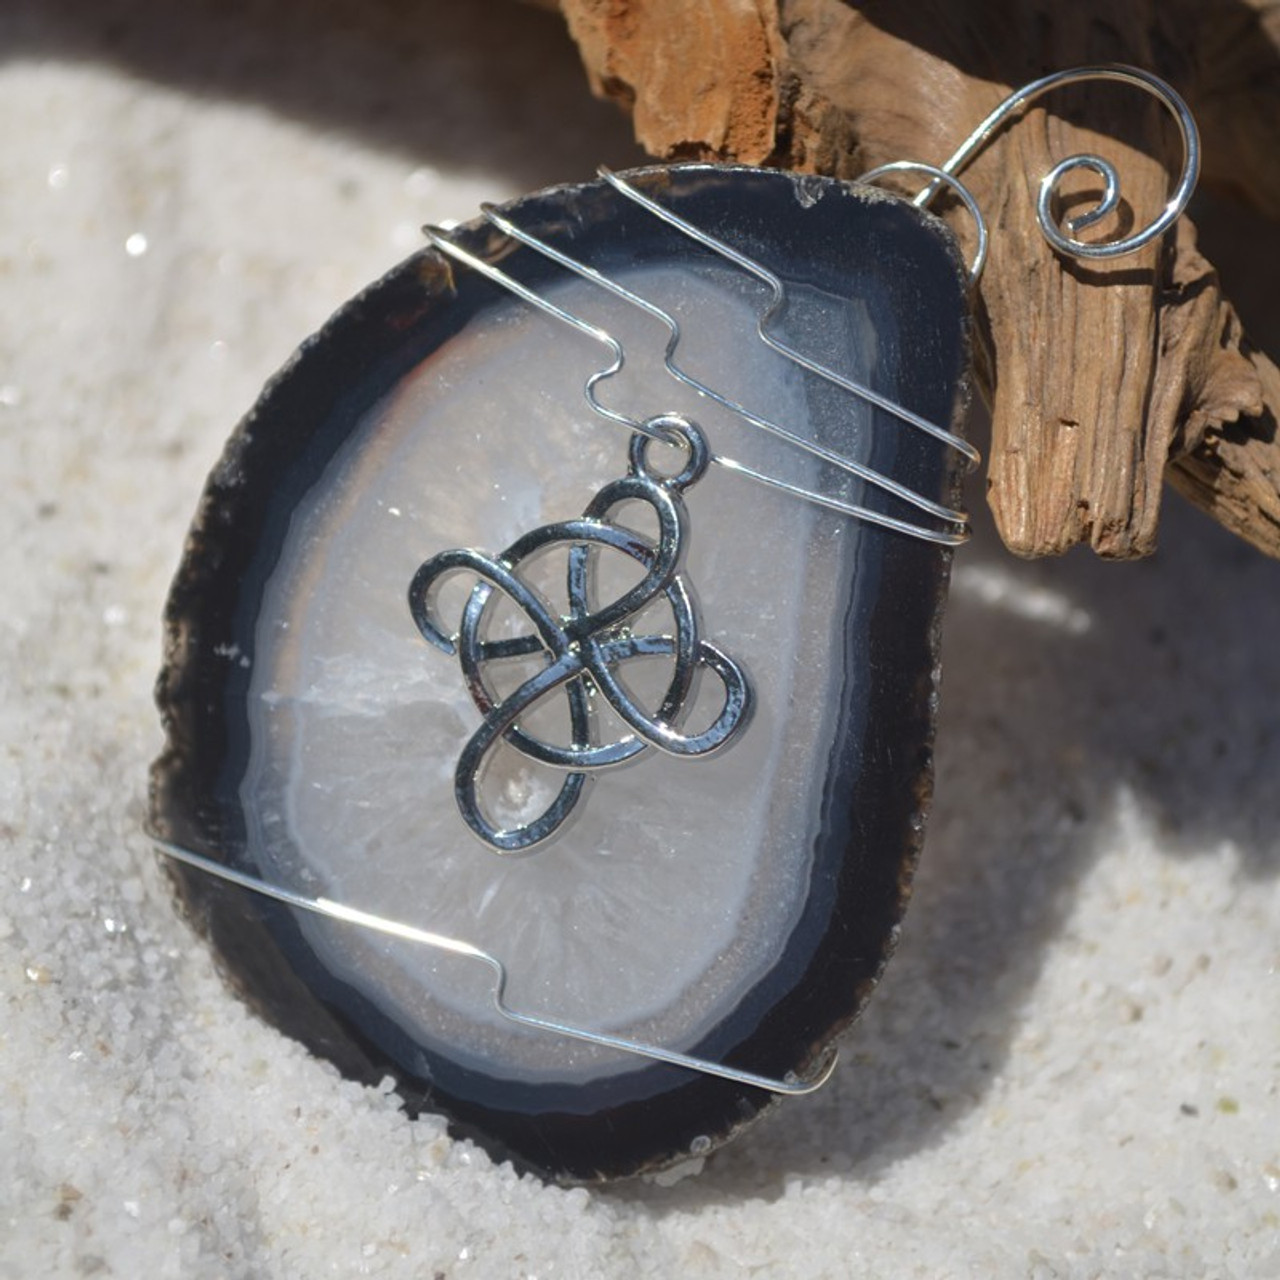 Agate Slice Ornament with Silver Celtic Cross Charm - Choose Your Agate Slice Color- Made to Order